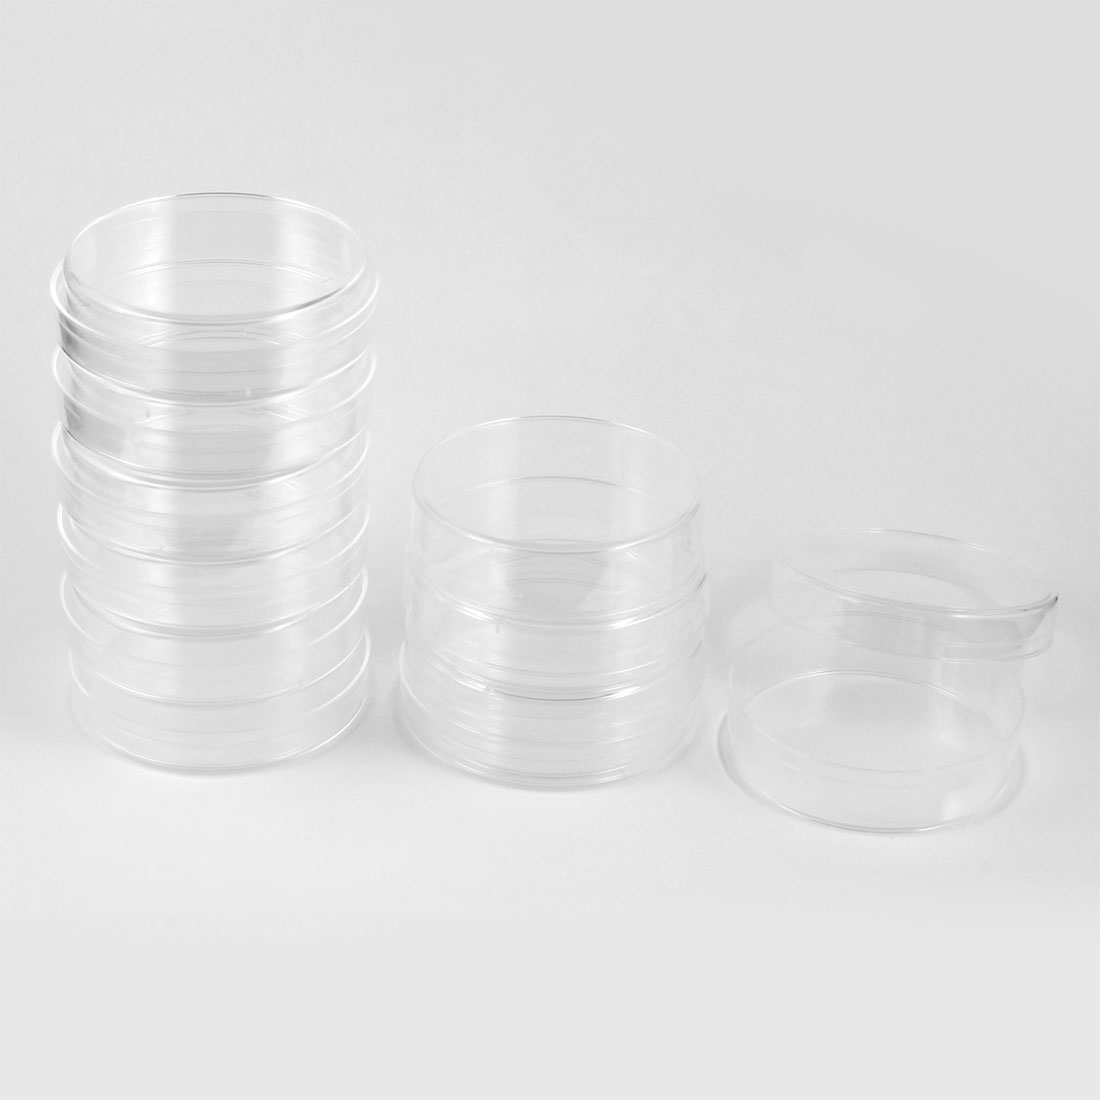 Laboratory 90mm Dia Cylindrical Transparent Cell Culture Dish 10 Pieces